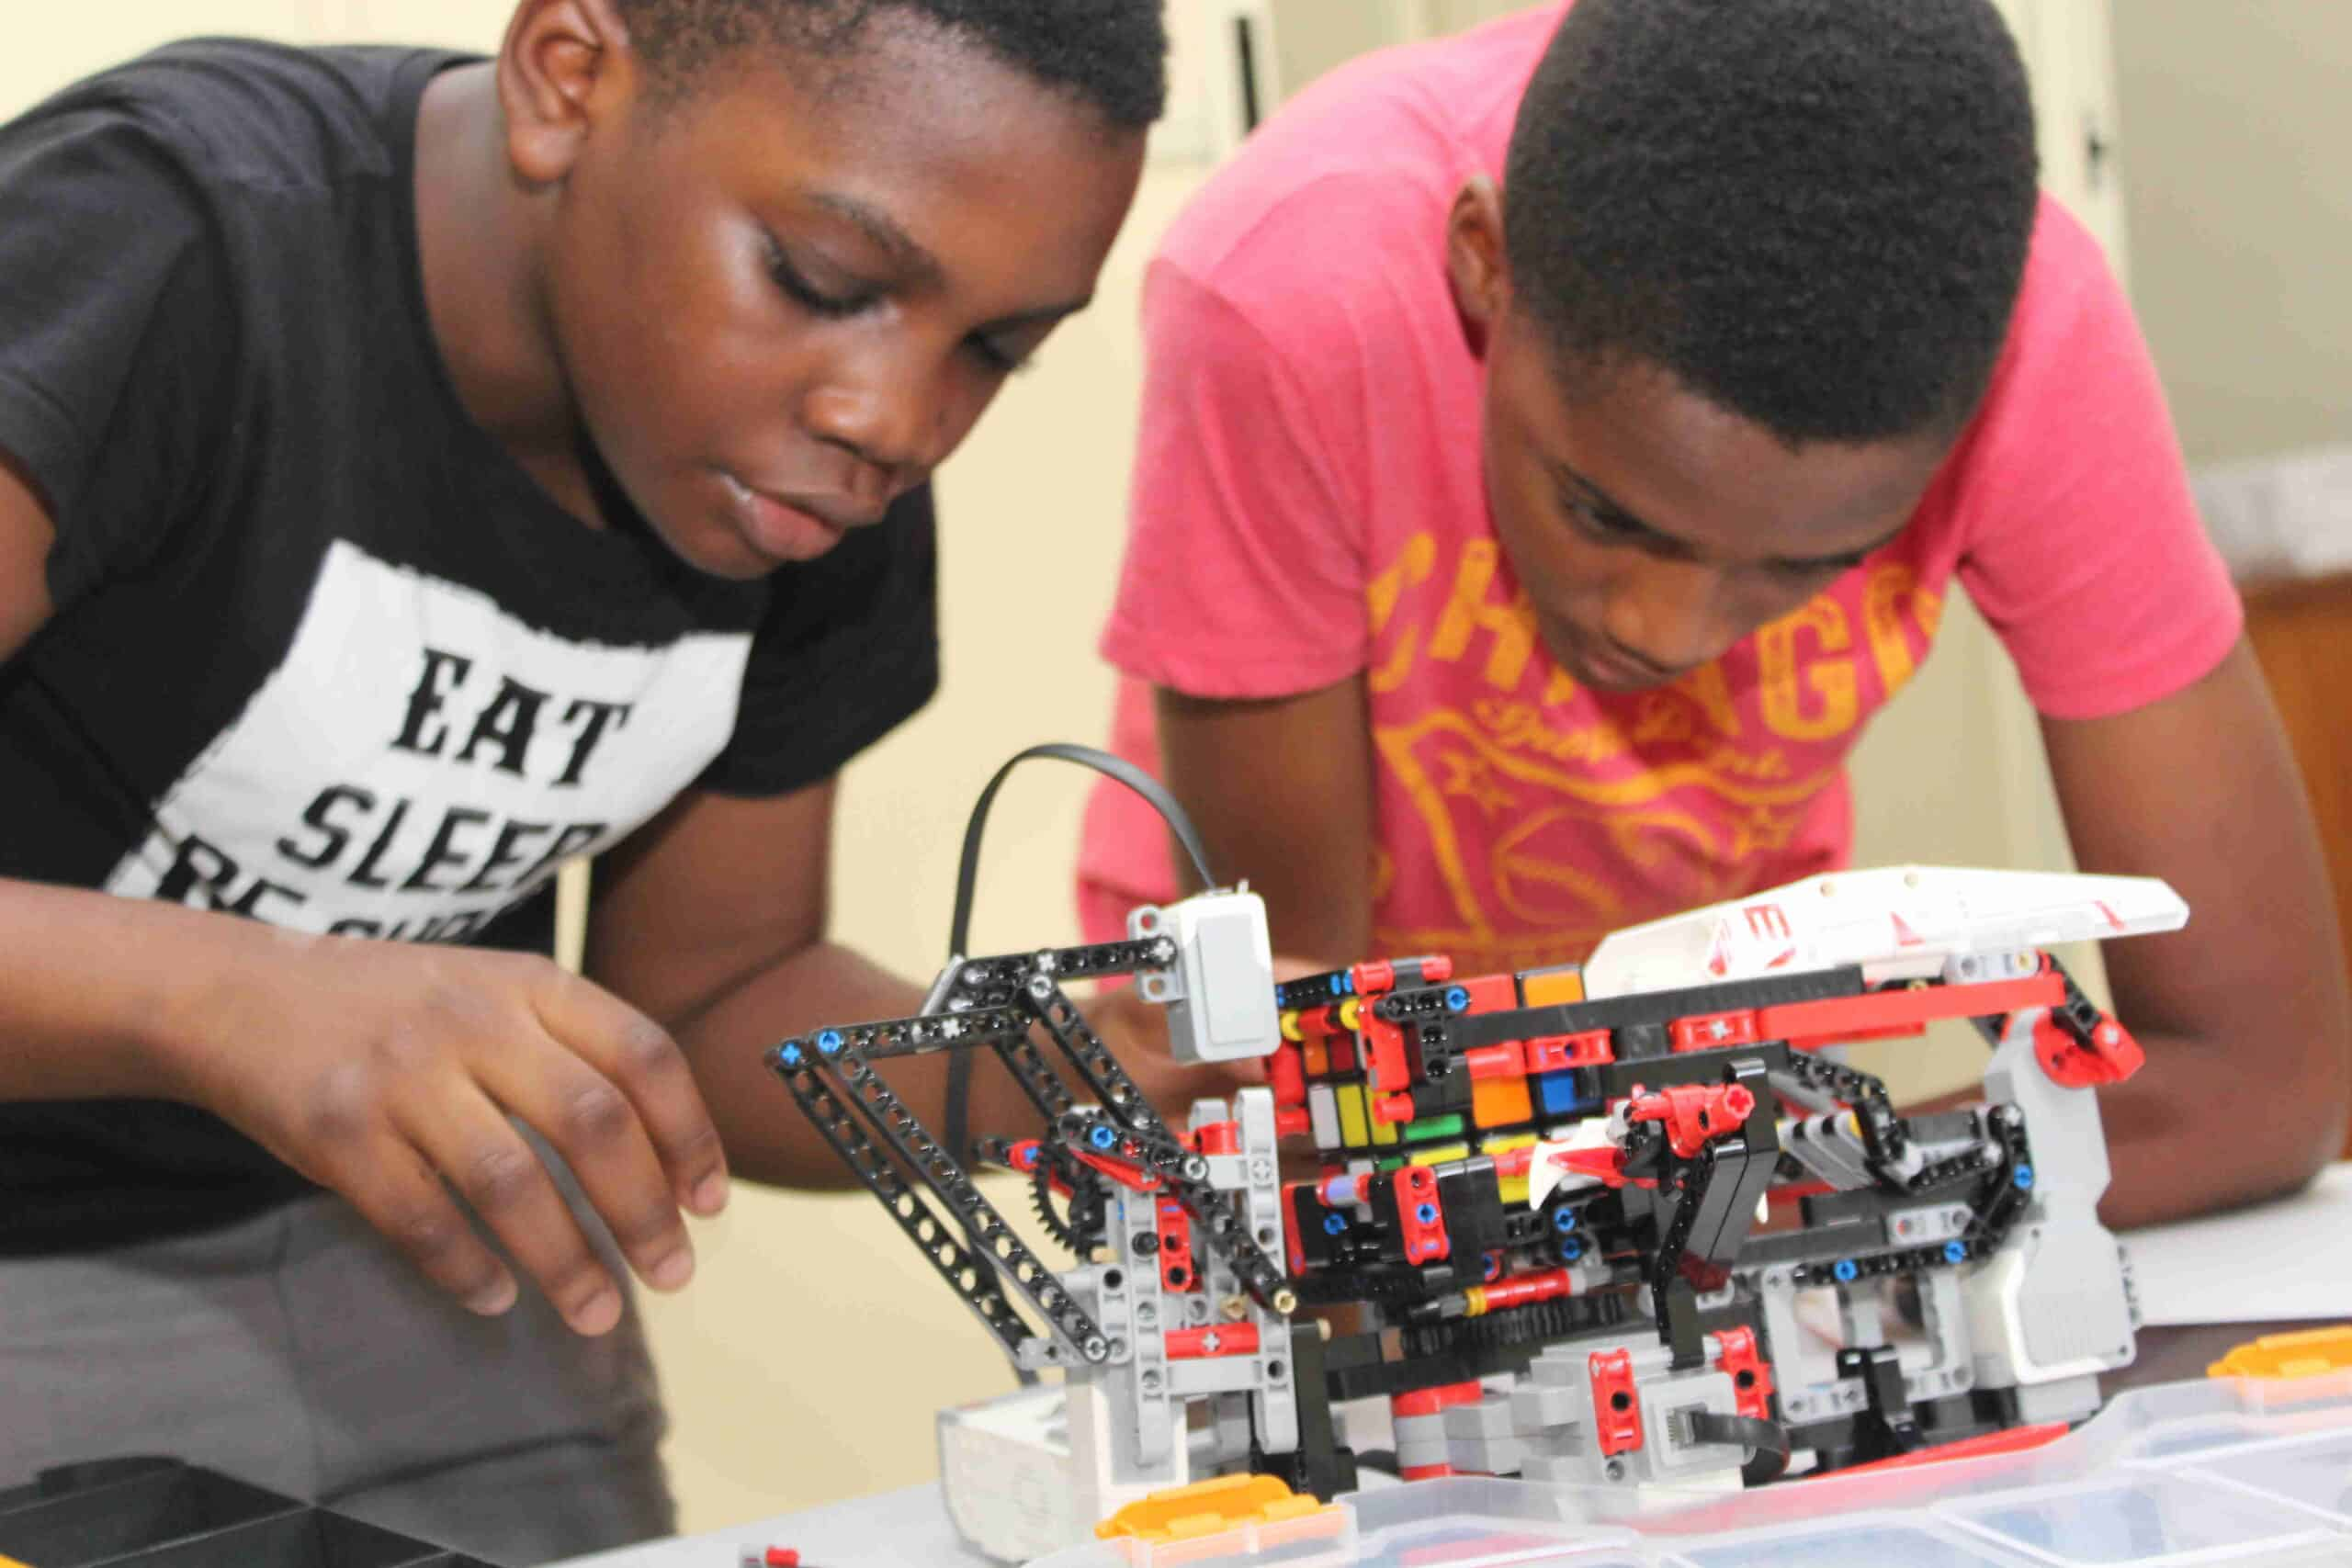 holiday summer easter coding robotics classes for kids in Nigeria Port Harcourt Lagos Abuja